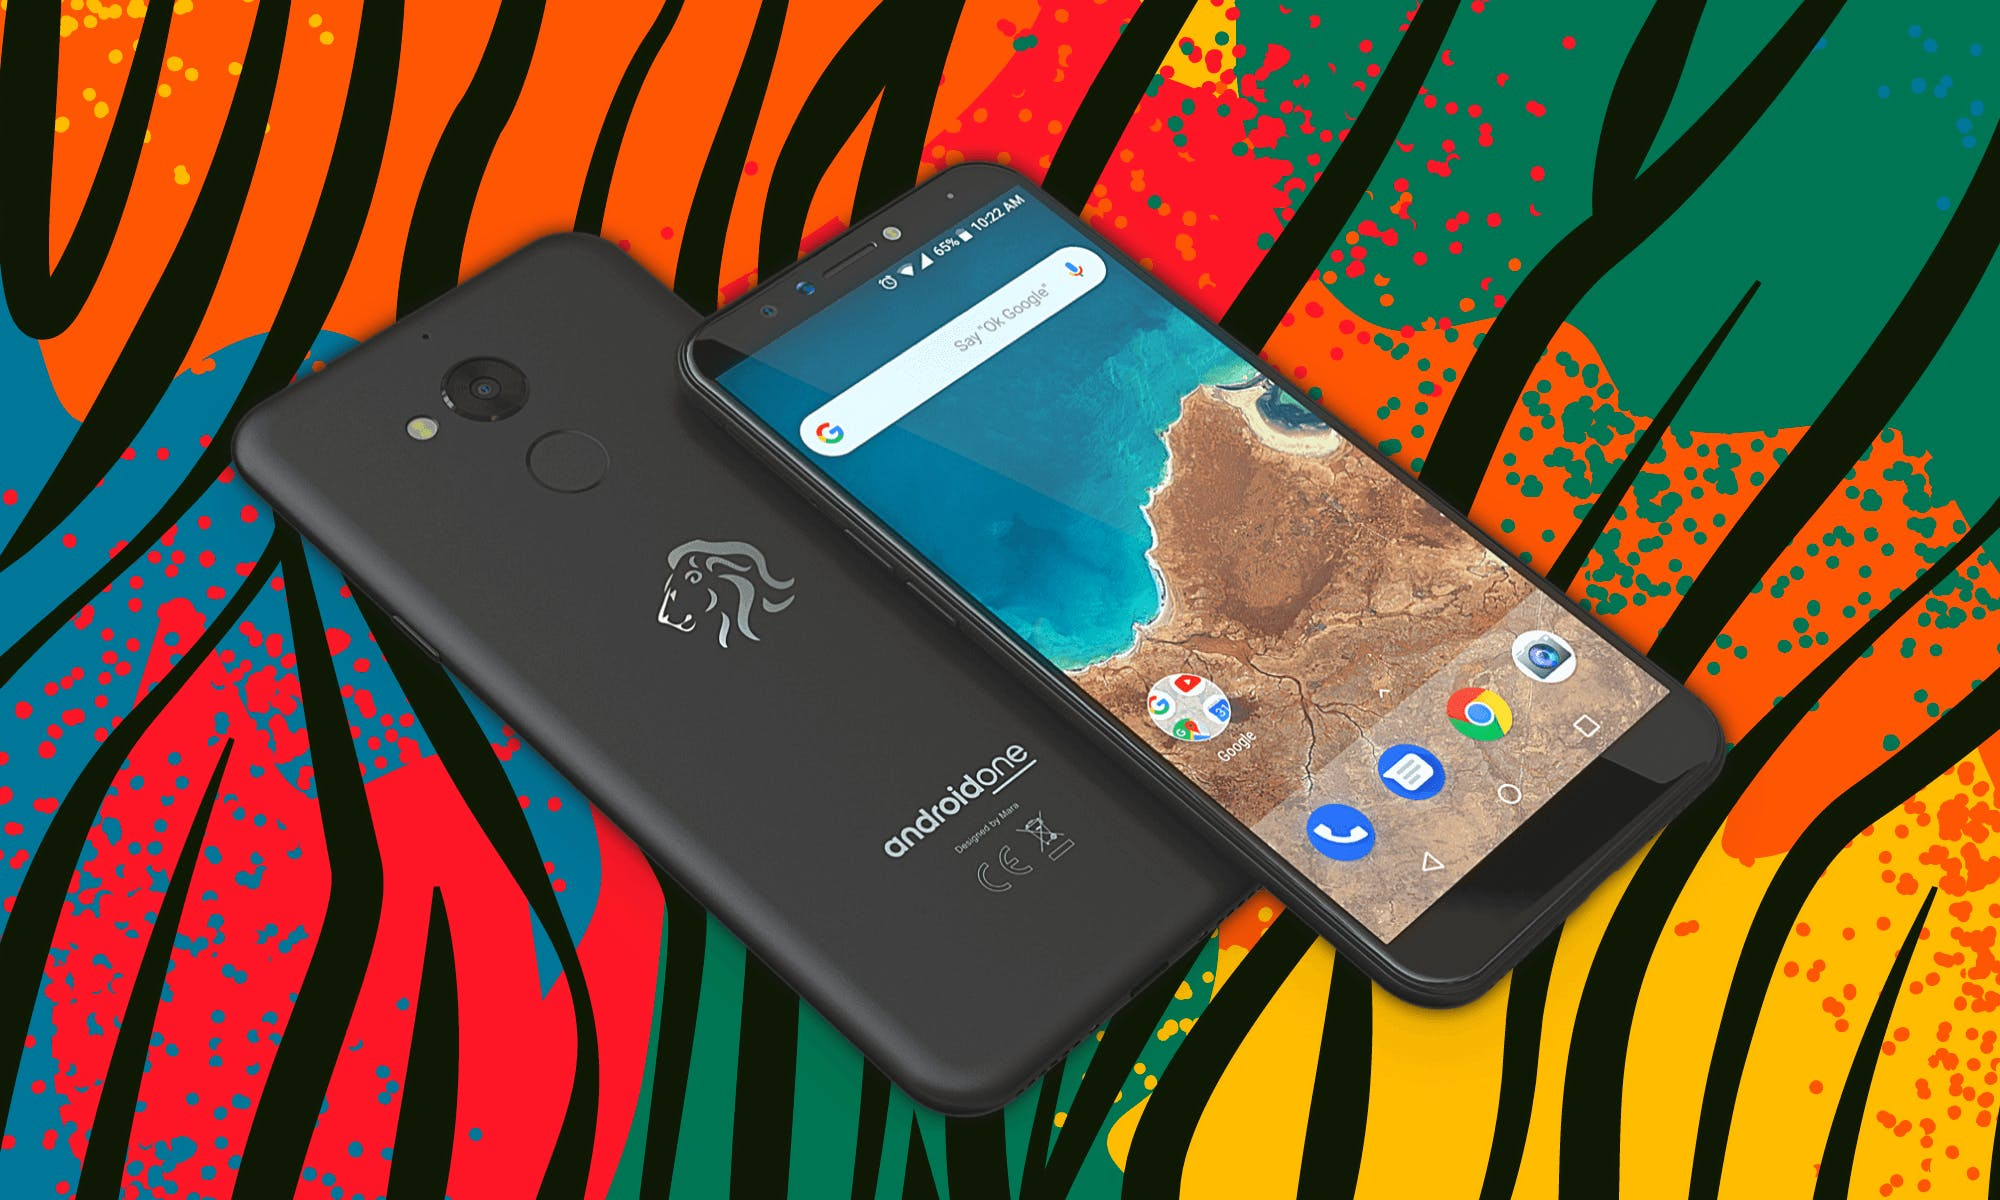 Made in Africa: The Mara Group Releases Two New Android Devices